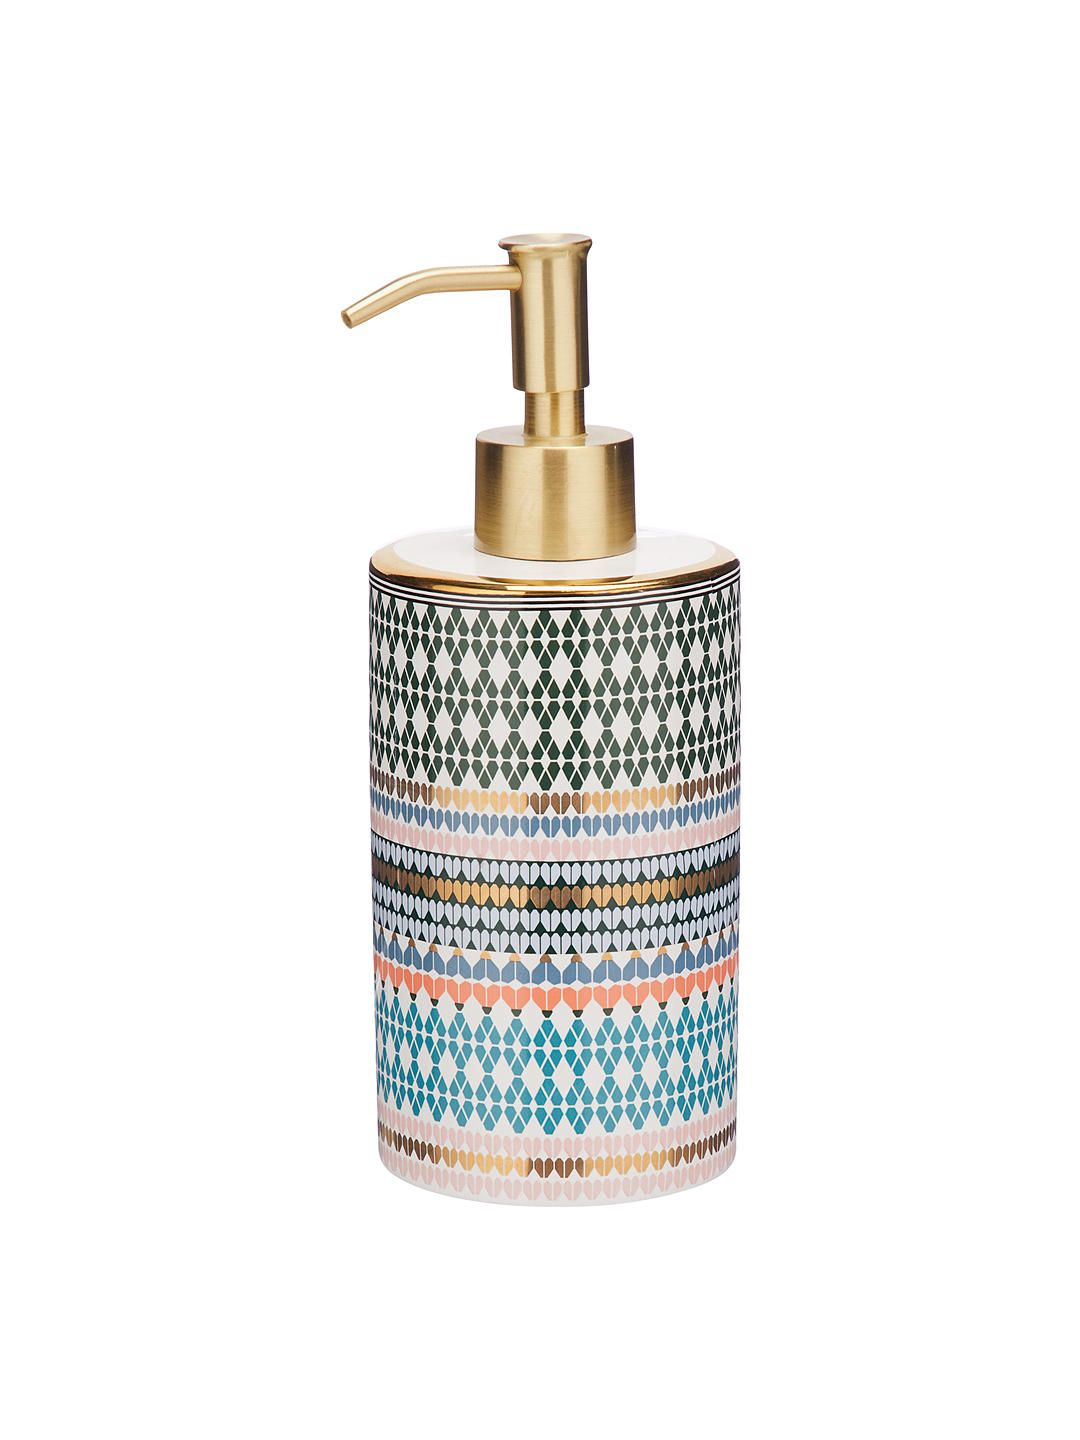 Margo Selby Soap Pump Soap Pump Margo Selby Soap Dispenser